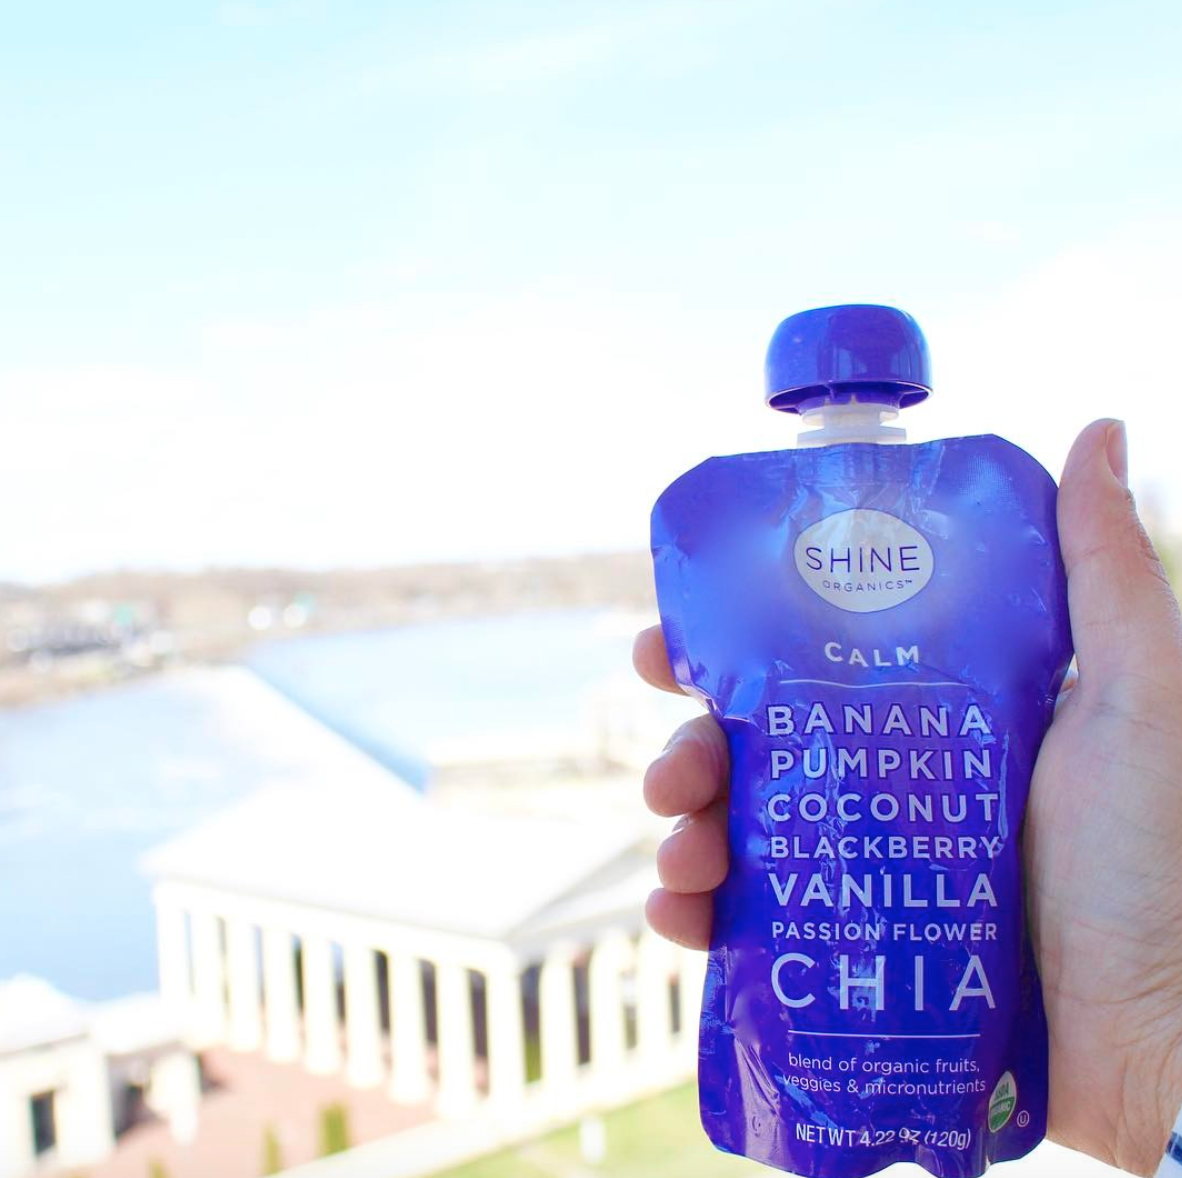 Taking total advantage of our lunch break to soak in the sun by the water.